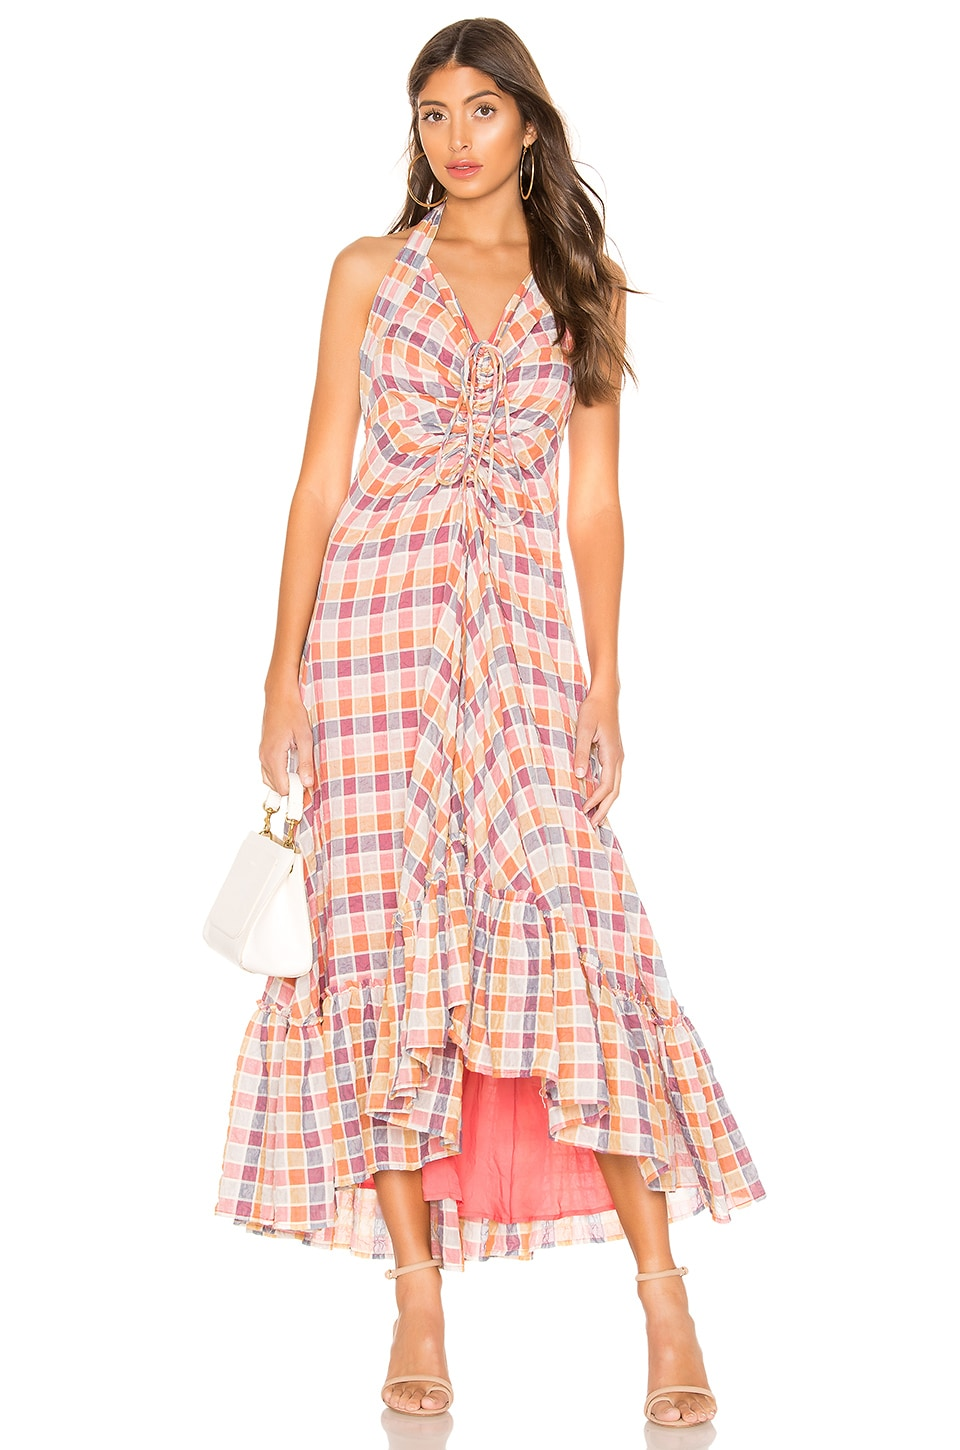 Free People Rainbow Dreams Maxi Dress in Pink Combo